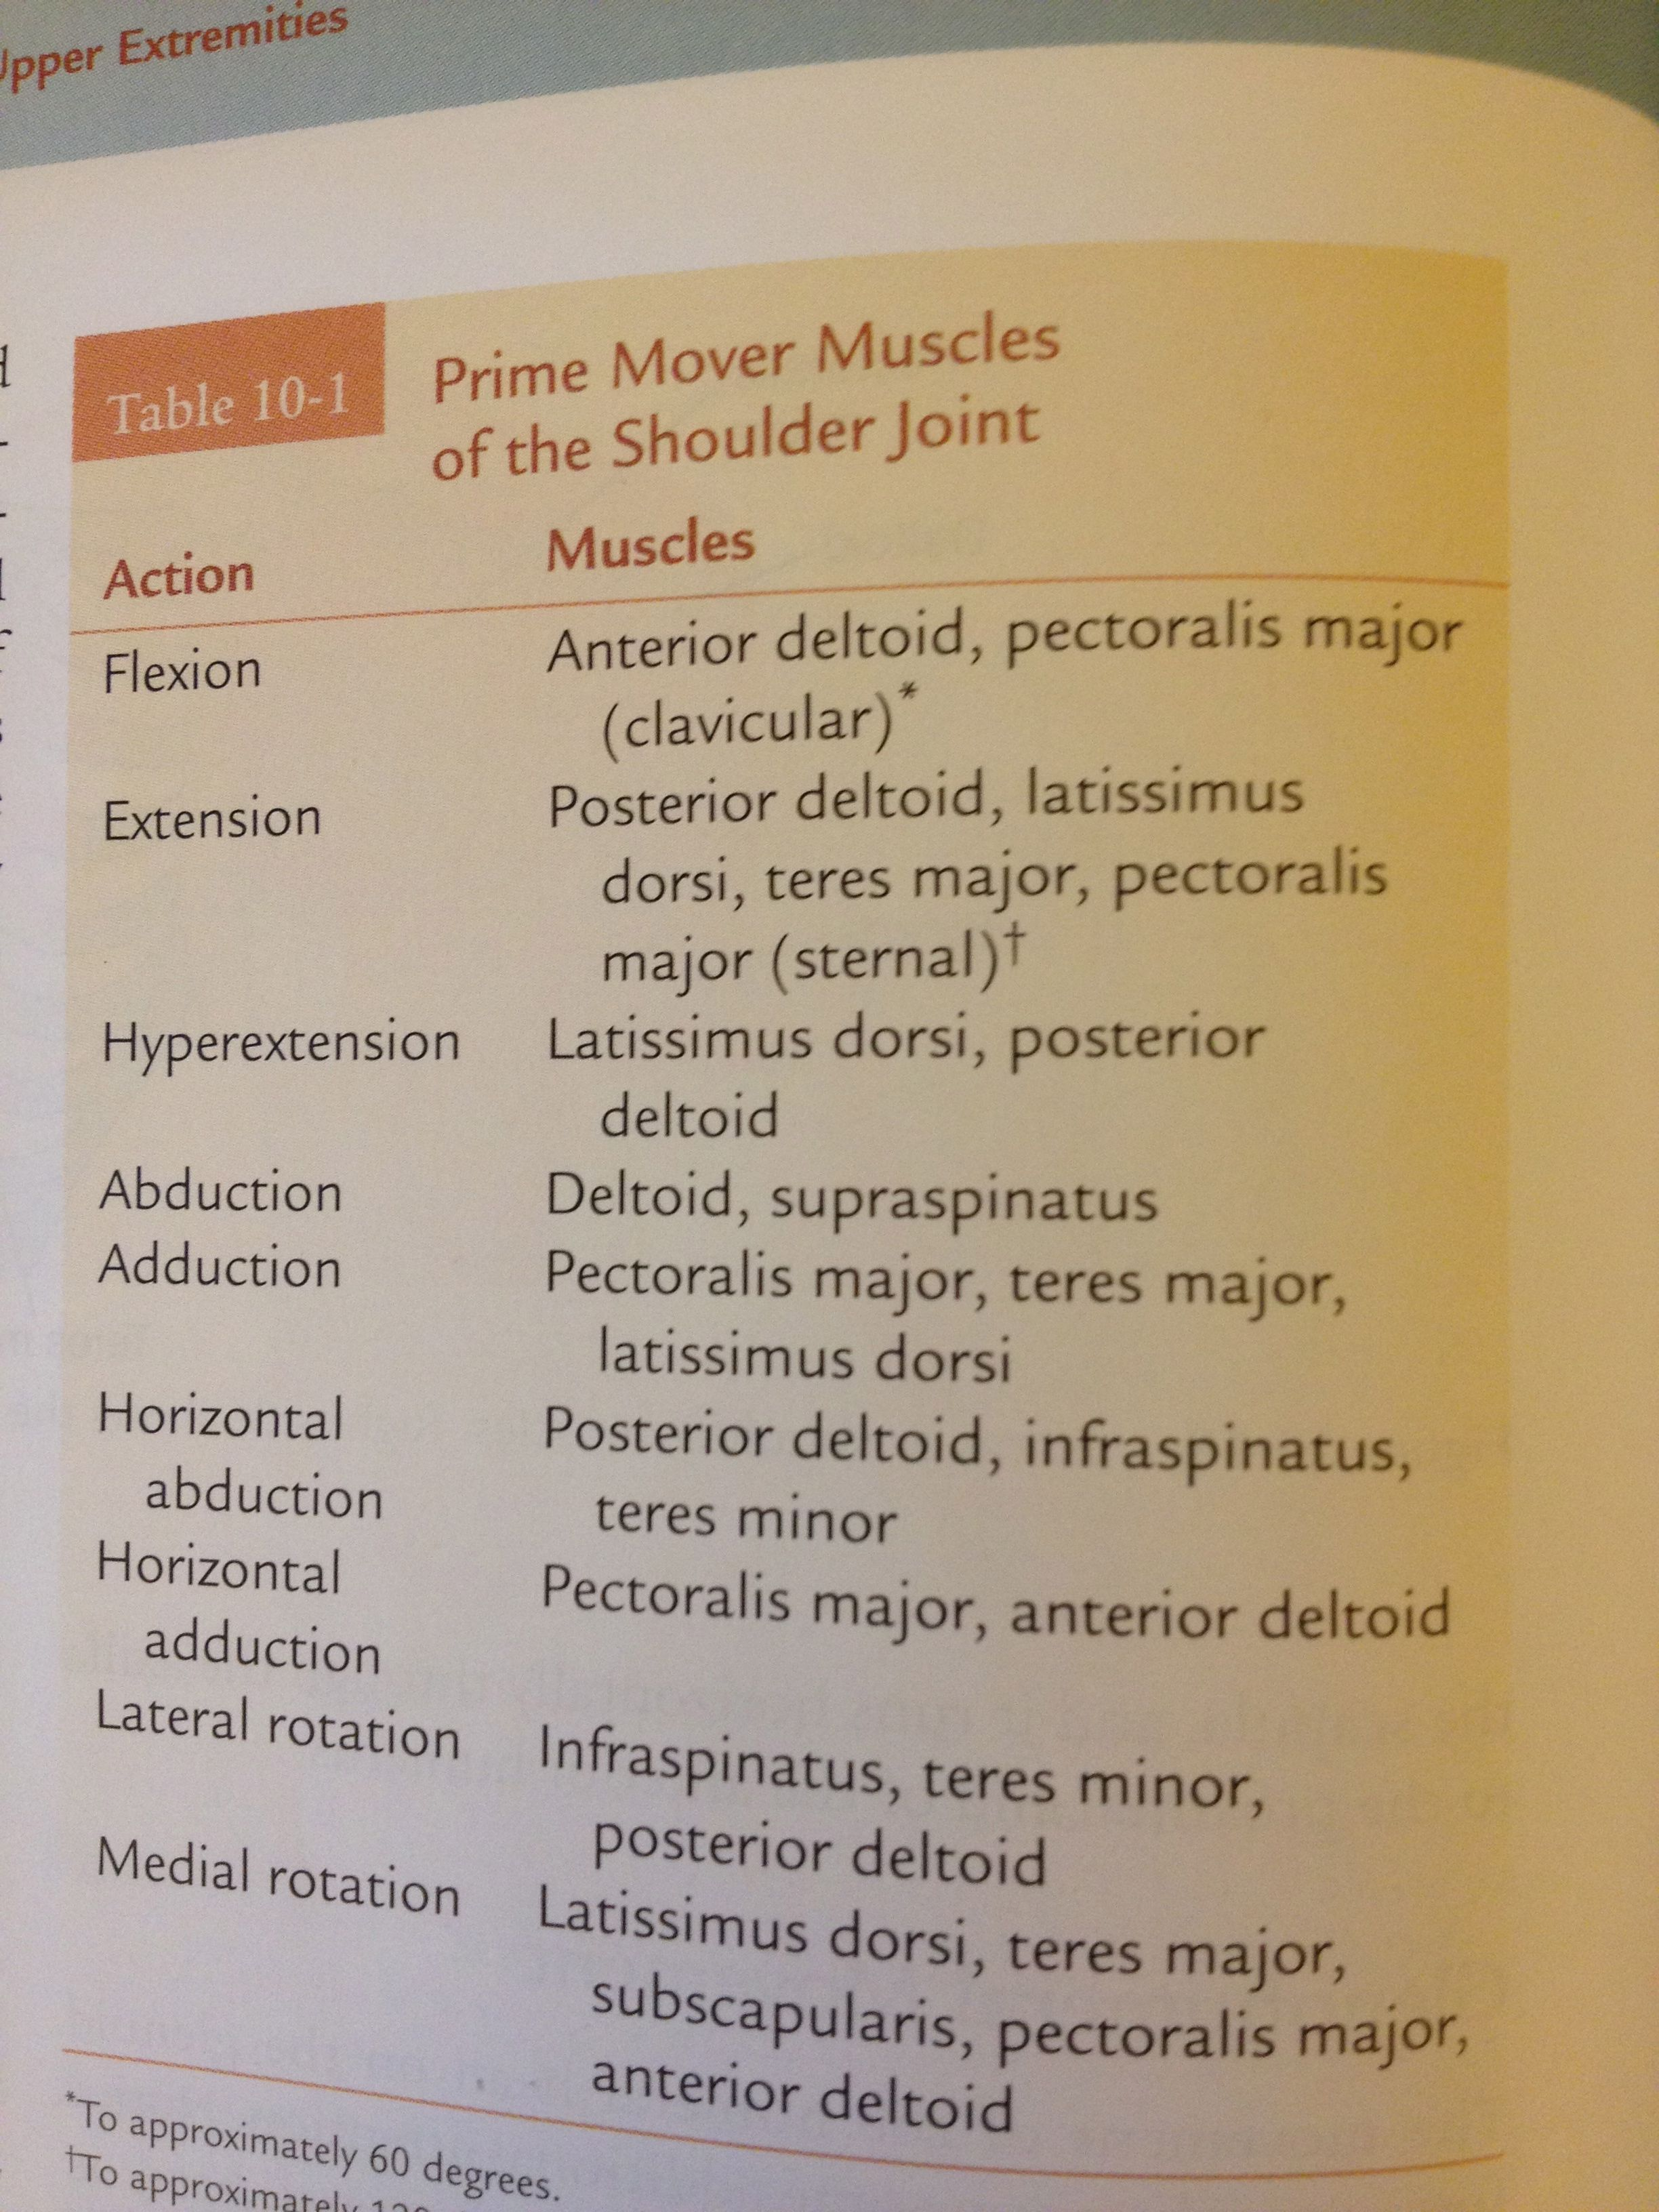 Prime Movers Of The Shoulder Joint From Cilincal Kinesiology